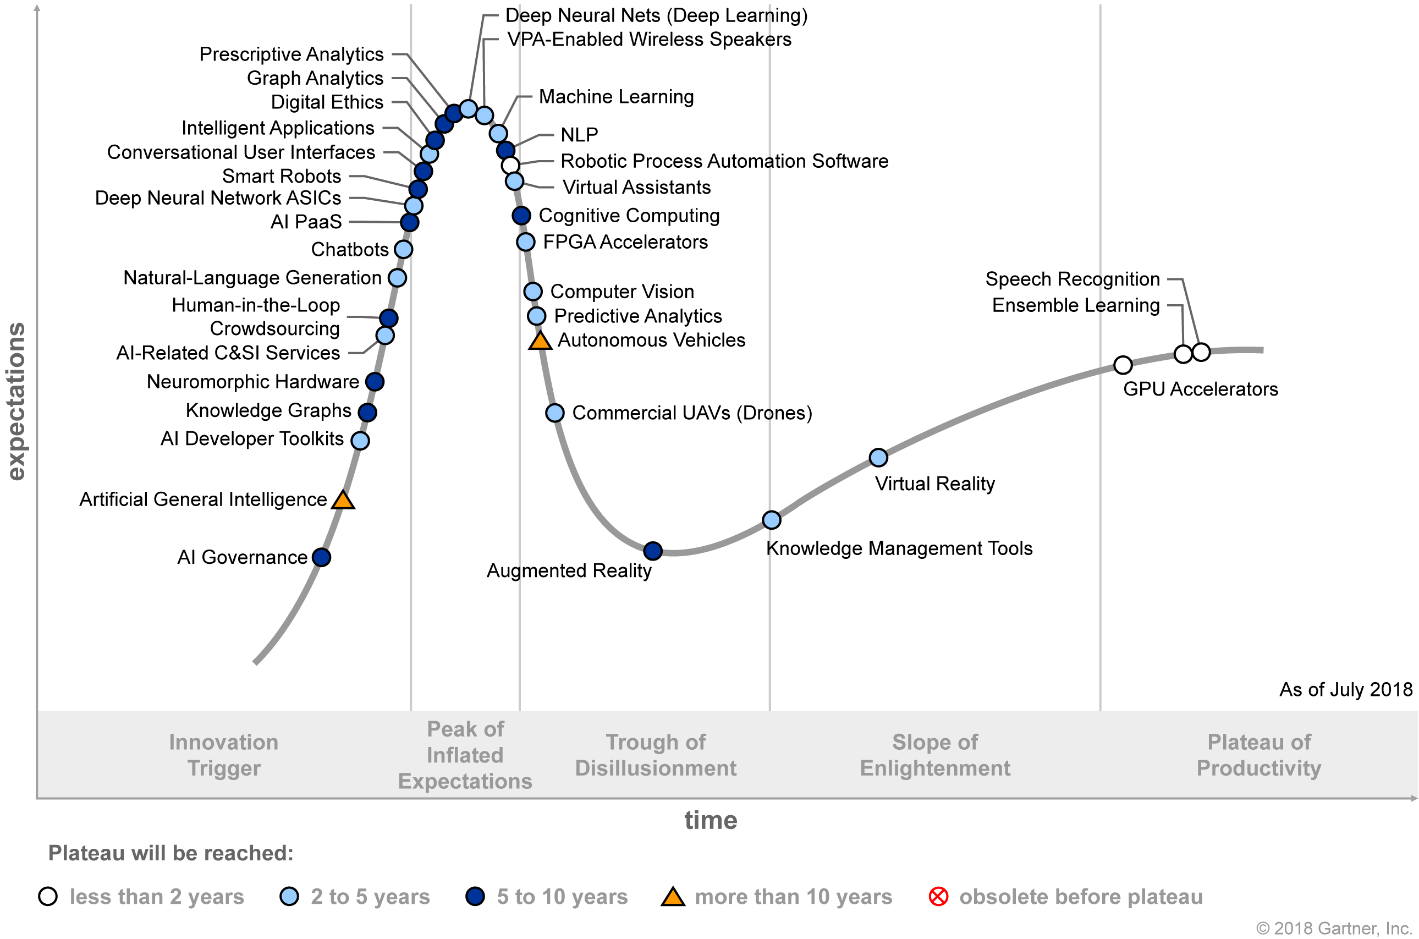 Gartner Hype Cycle for Artificial Intelligence 2018 (G00357478)